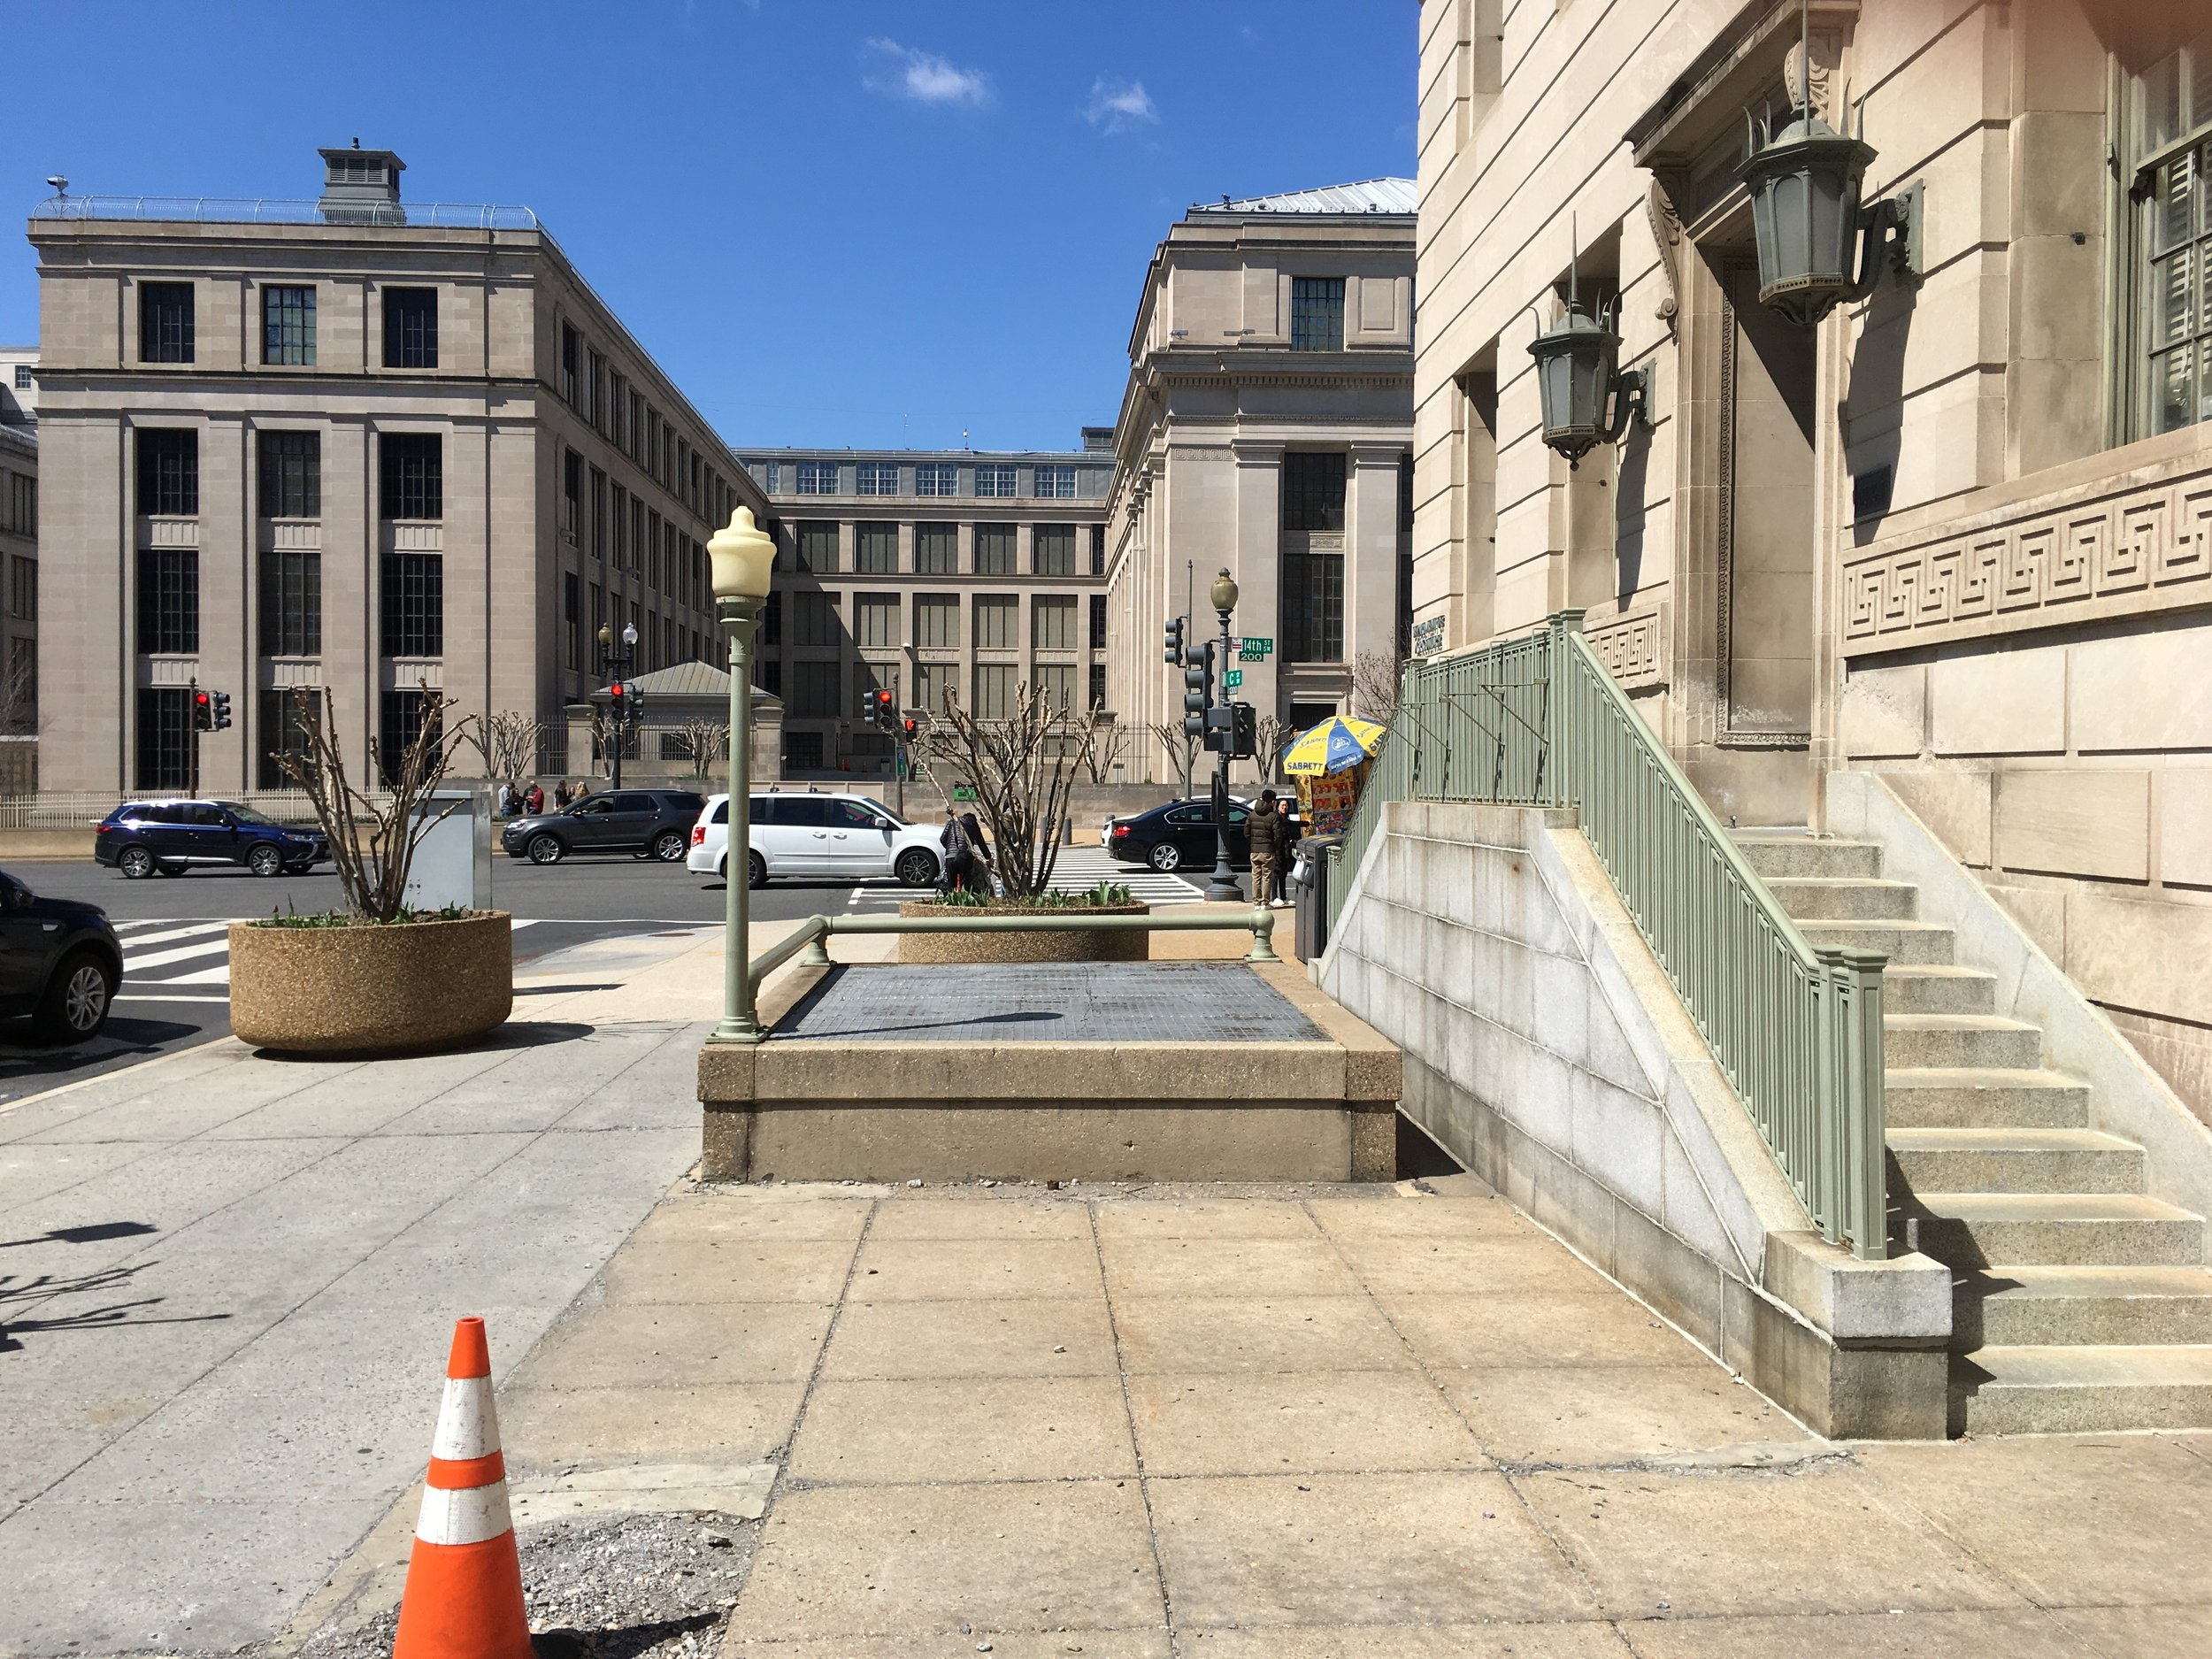 The pedestrian entrances to the Bureau of Engraving and Printing loop were sealed and abandoned in place. Photo: Elliot Carter